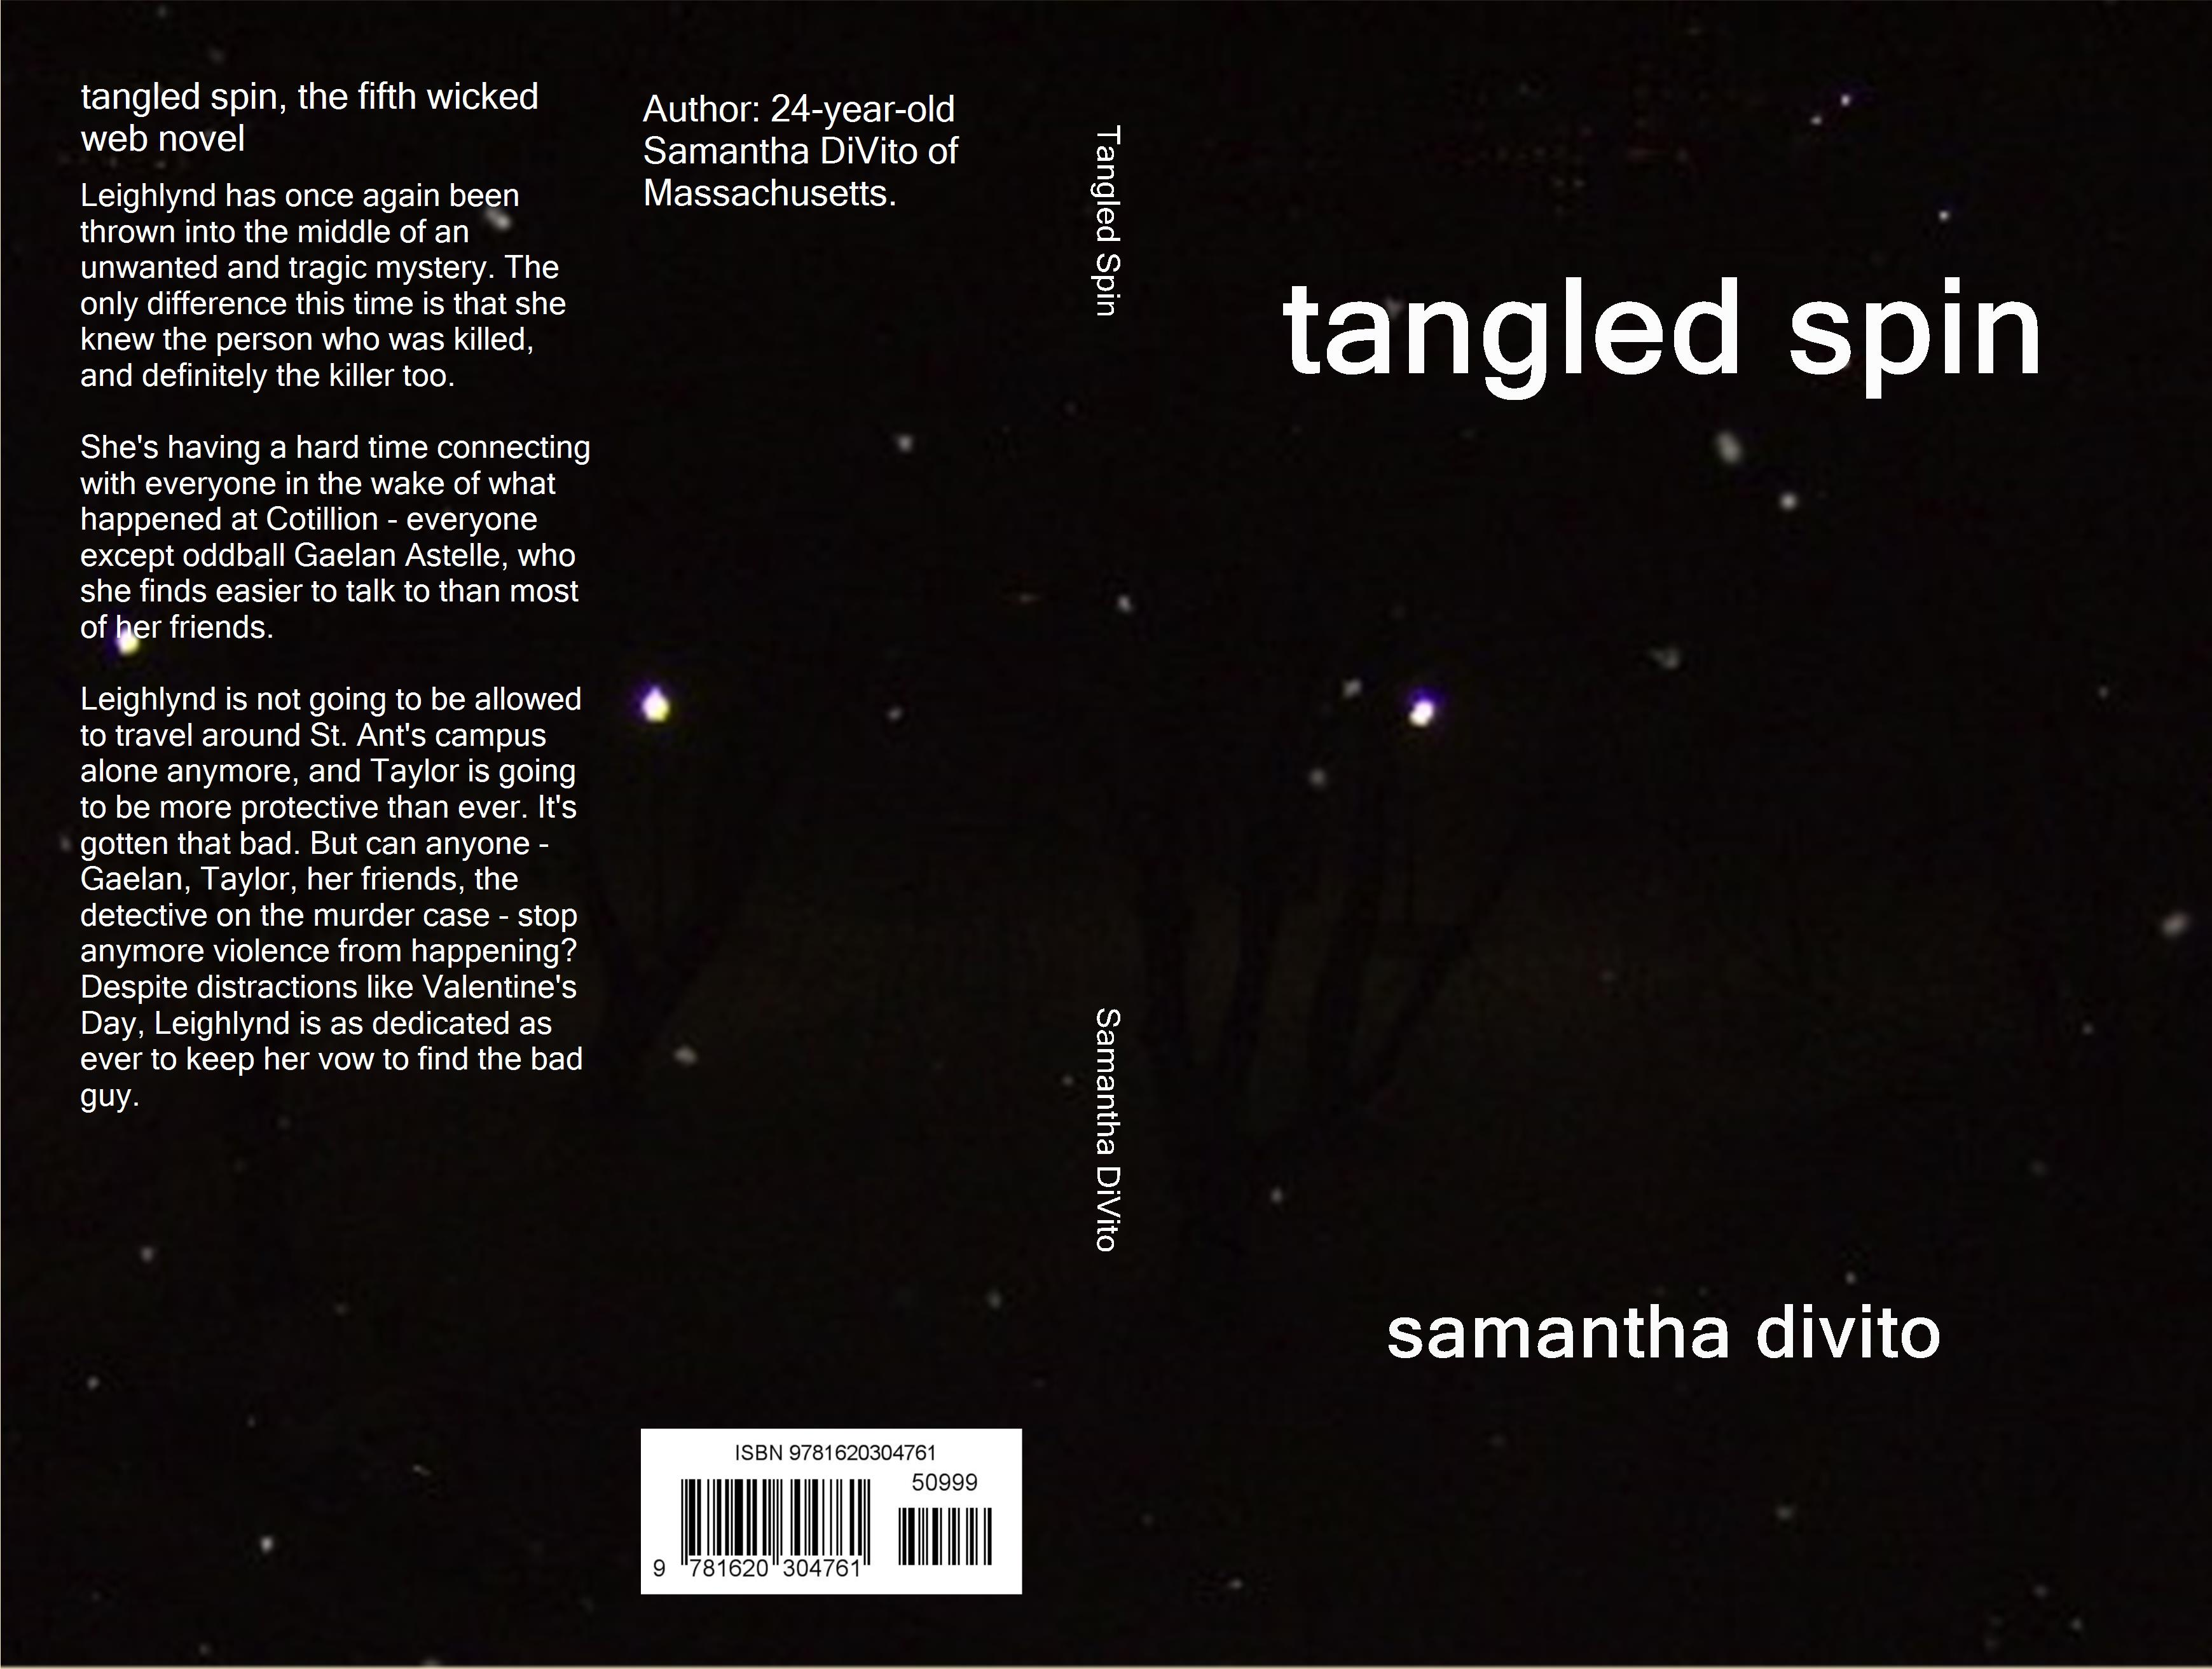 tangled spin cover image